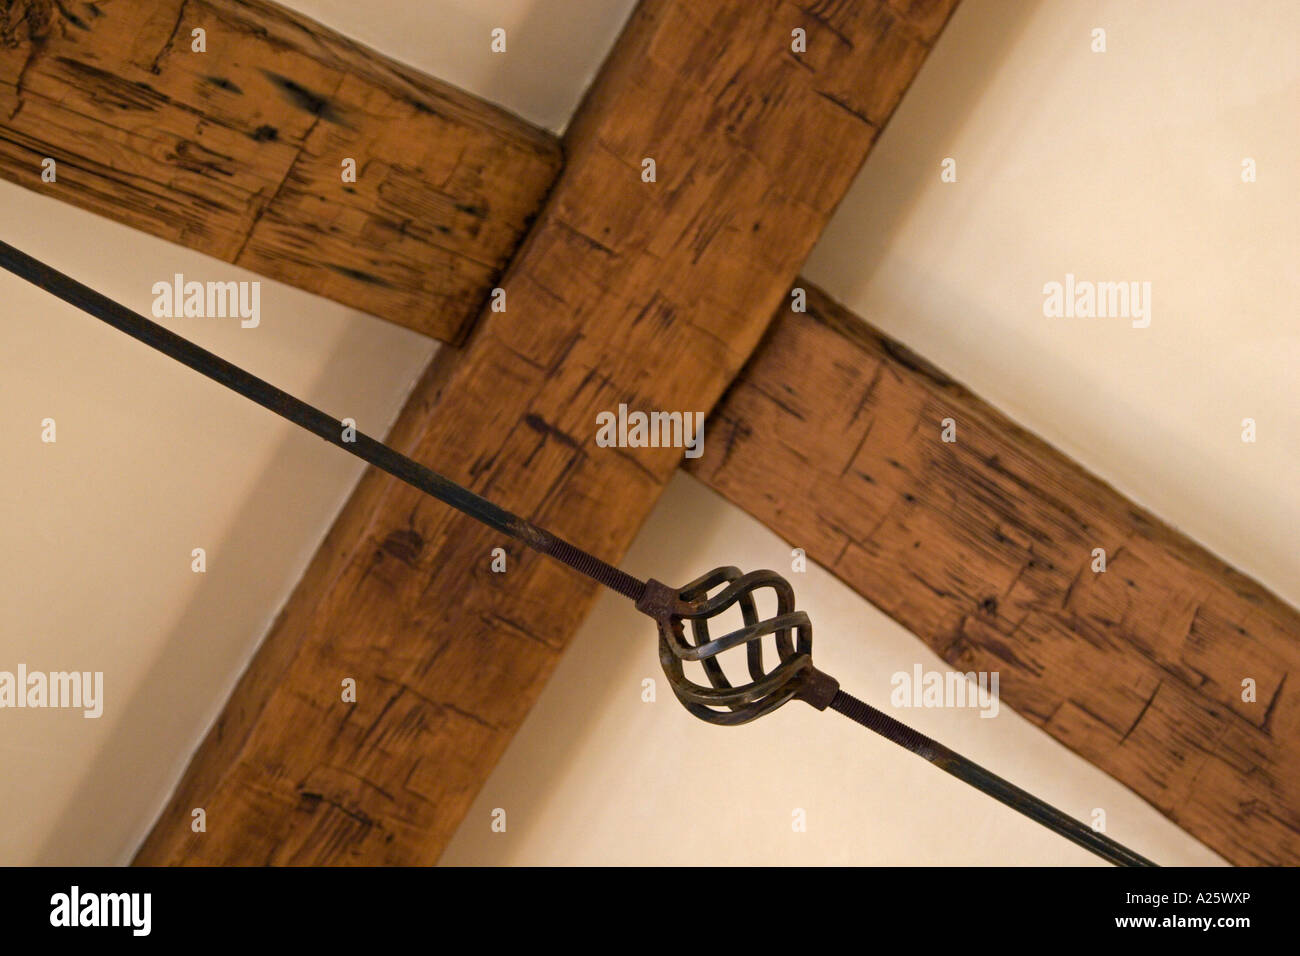 A Wrought Iron Turnbuckle And Open Beam Ceiling In A